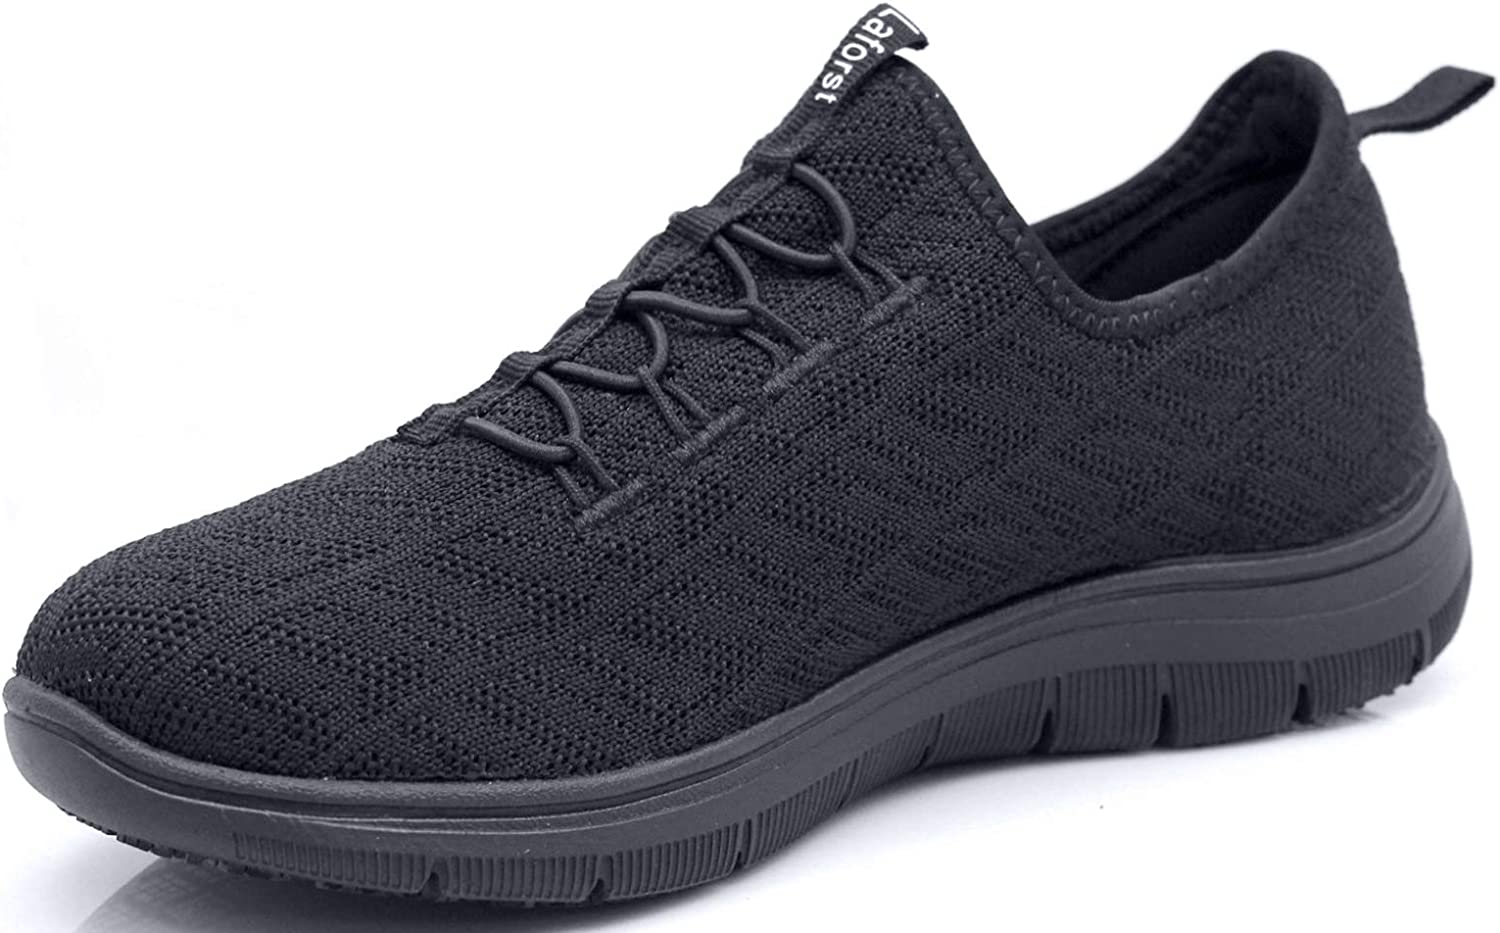 Laforst Jewel 3155 Womens Synthetic Mesh Upper Resi Limited time for free shipping Slip Lace Up Max 61% OFF